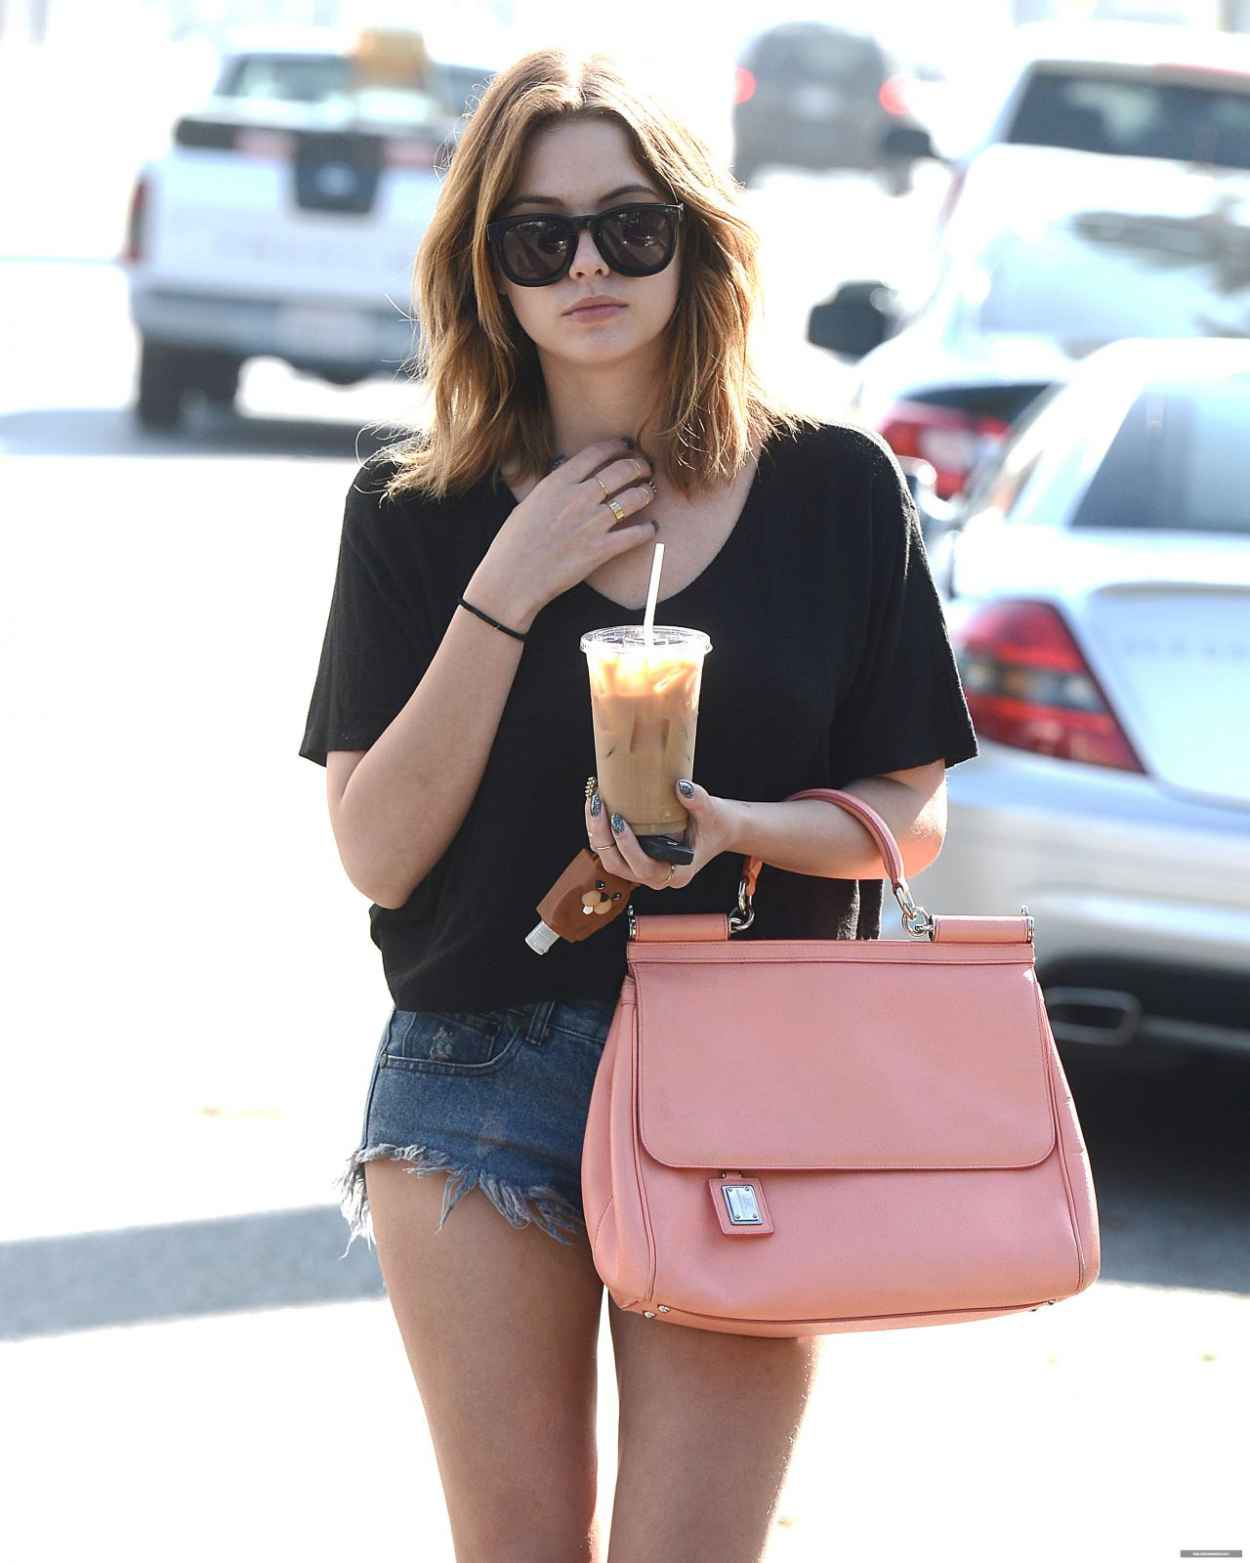 Ashley Benson Shows Off Her Legs in Short Denim Shorts - Out For a Cofee in Los Angeles - January 2015-1